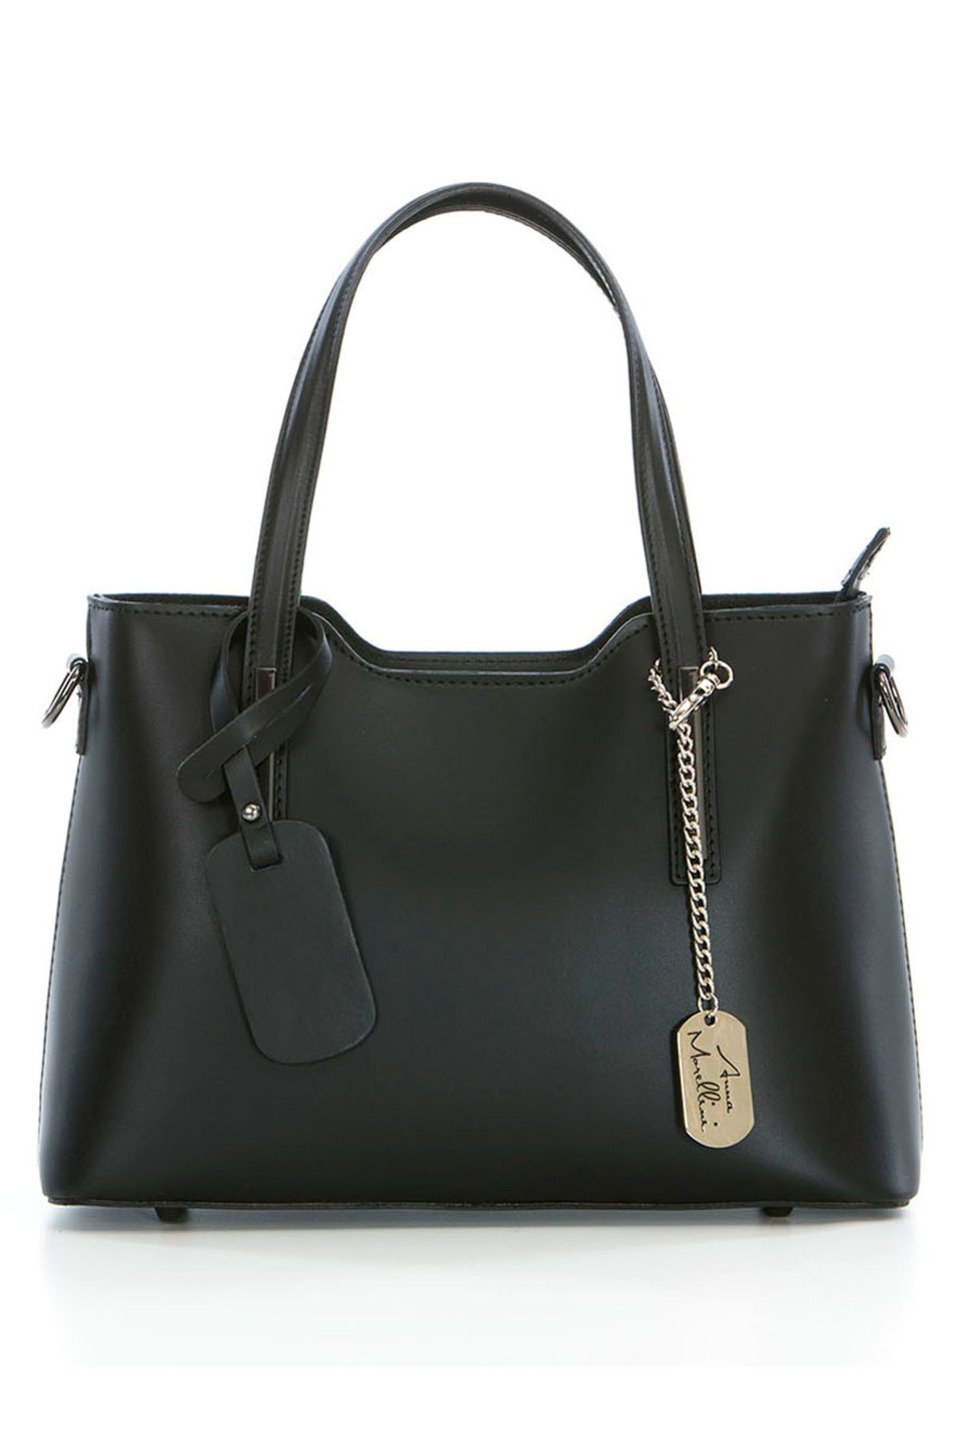 CINDY HANDBAG IN BLACK